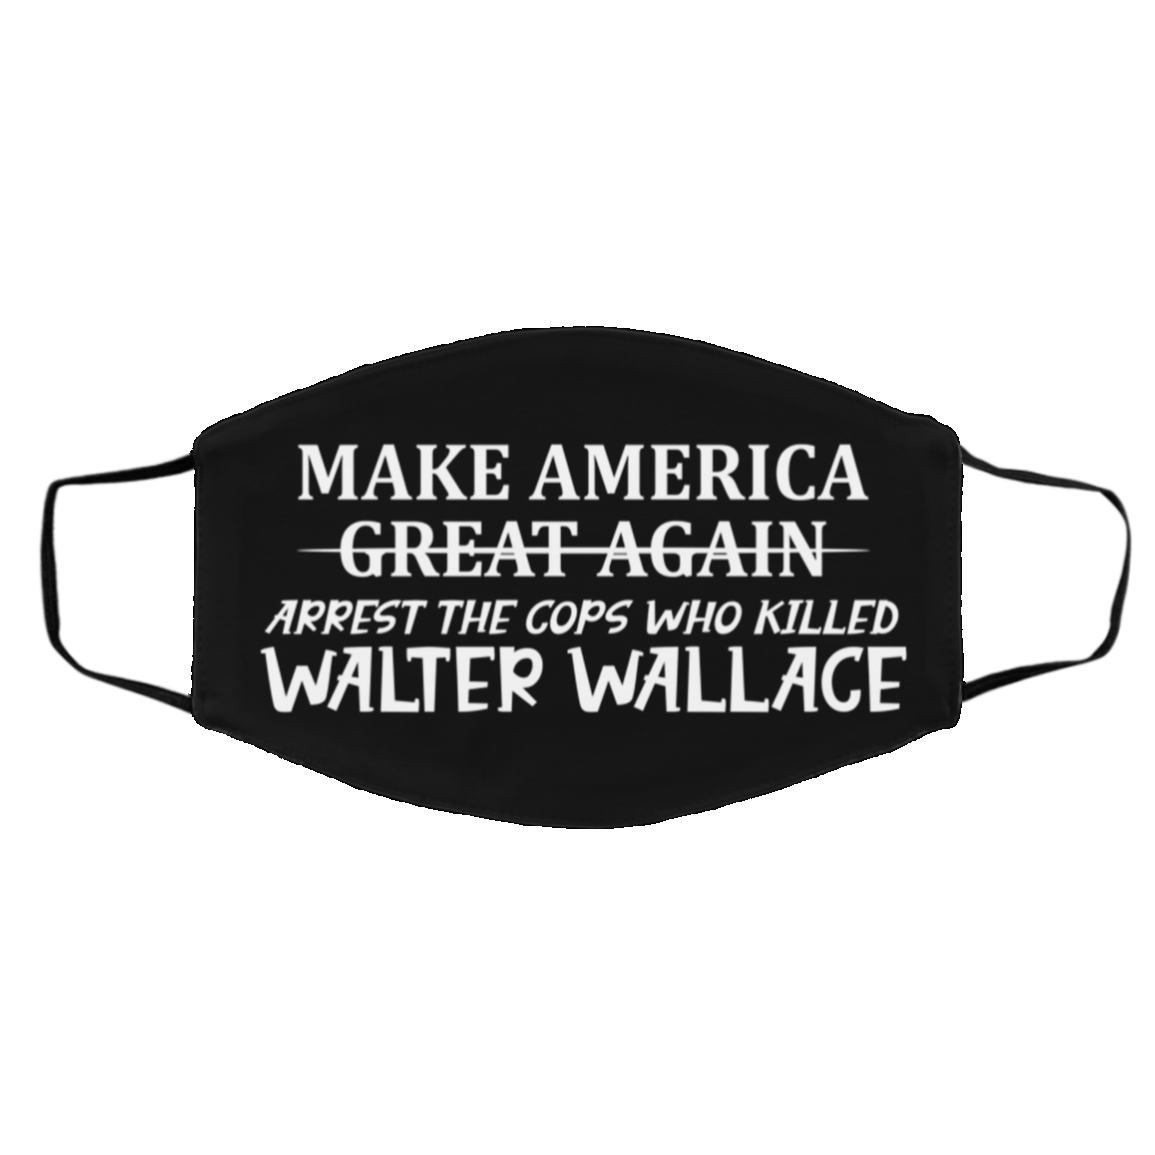 Make America Great Again Arrest The Cops Who Killed Walter Wallace Reusable Printed Cloth Face Mask, Black, Cloth Face Cover – Medium/Large